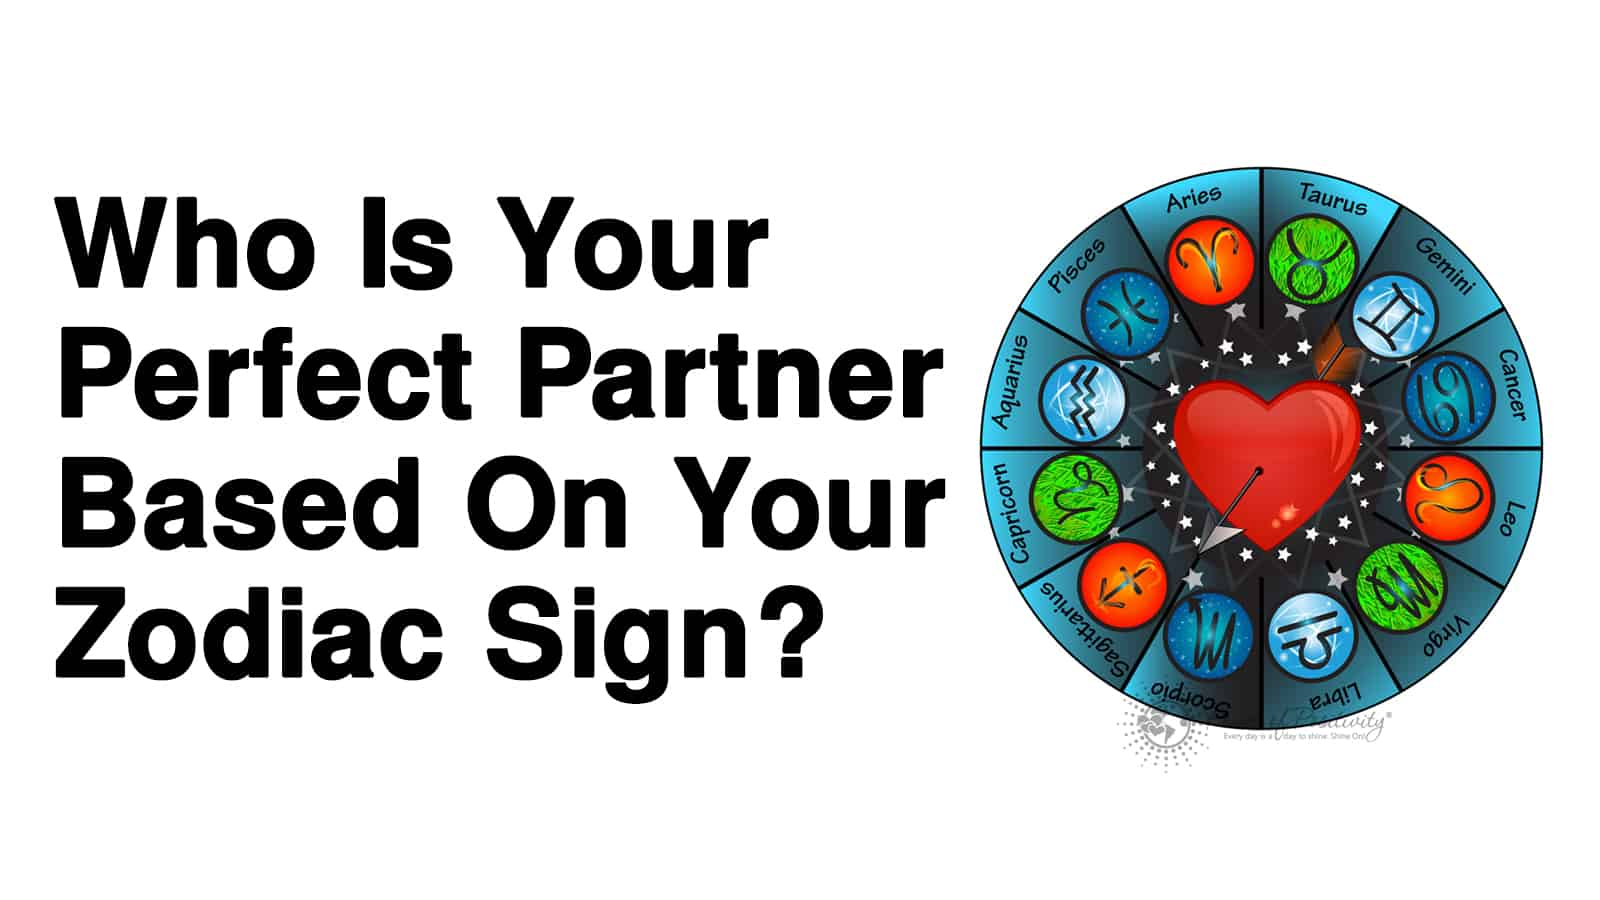 Who Is Perfekt who is your partner based on your zodiac sign